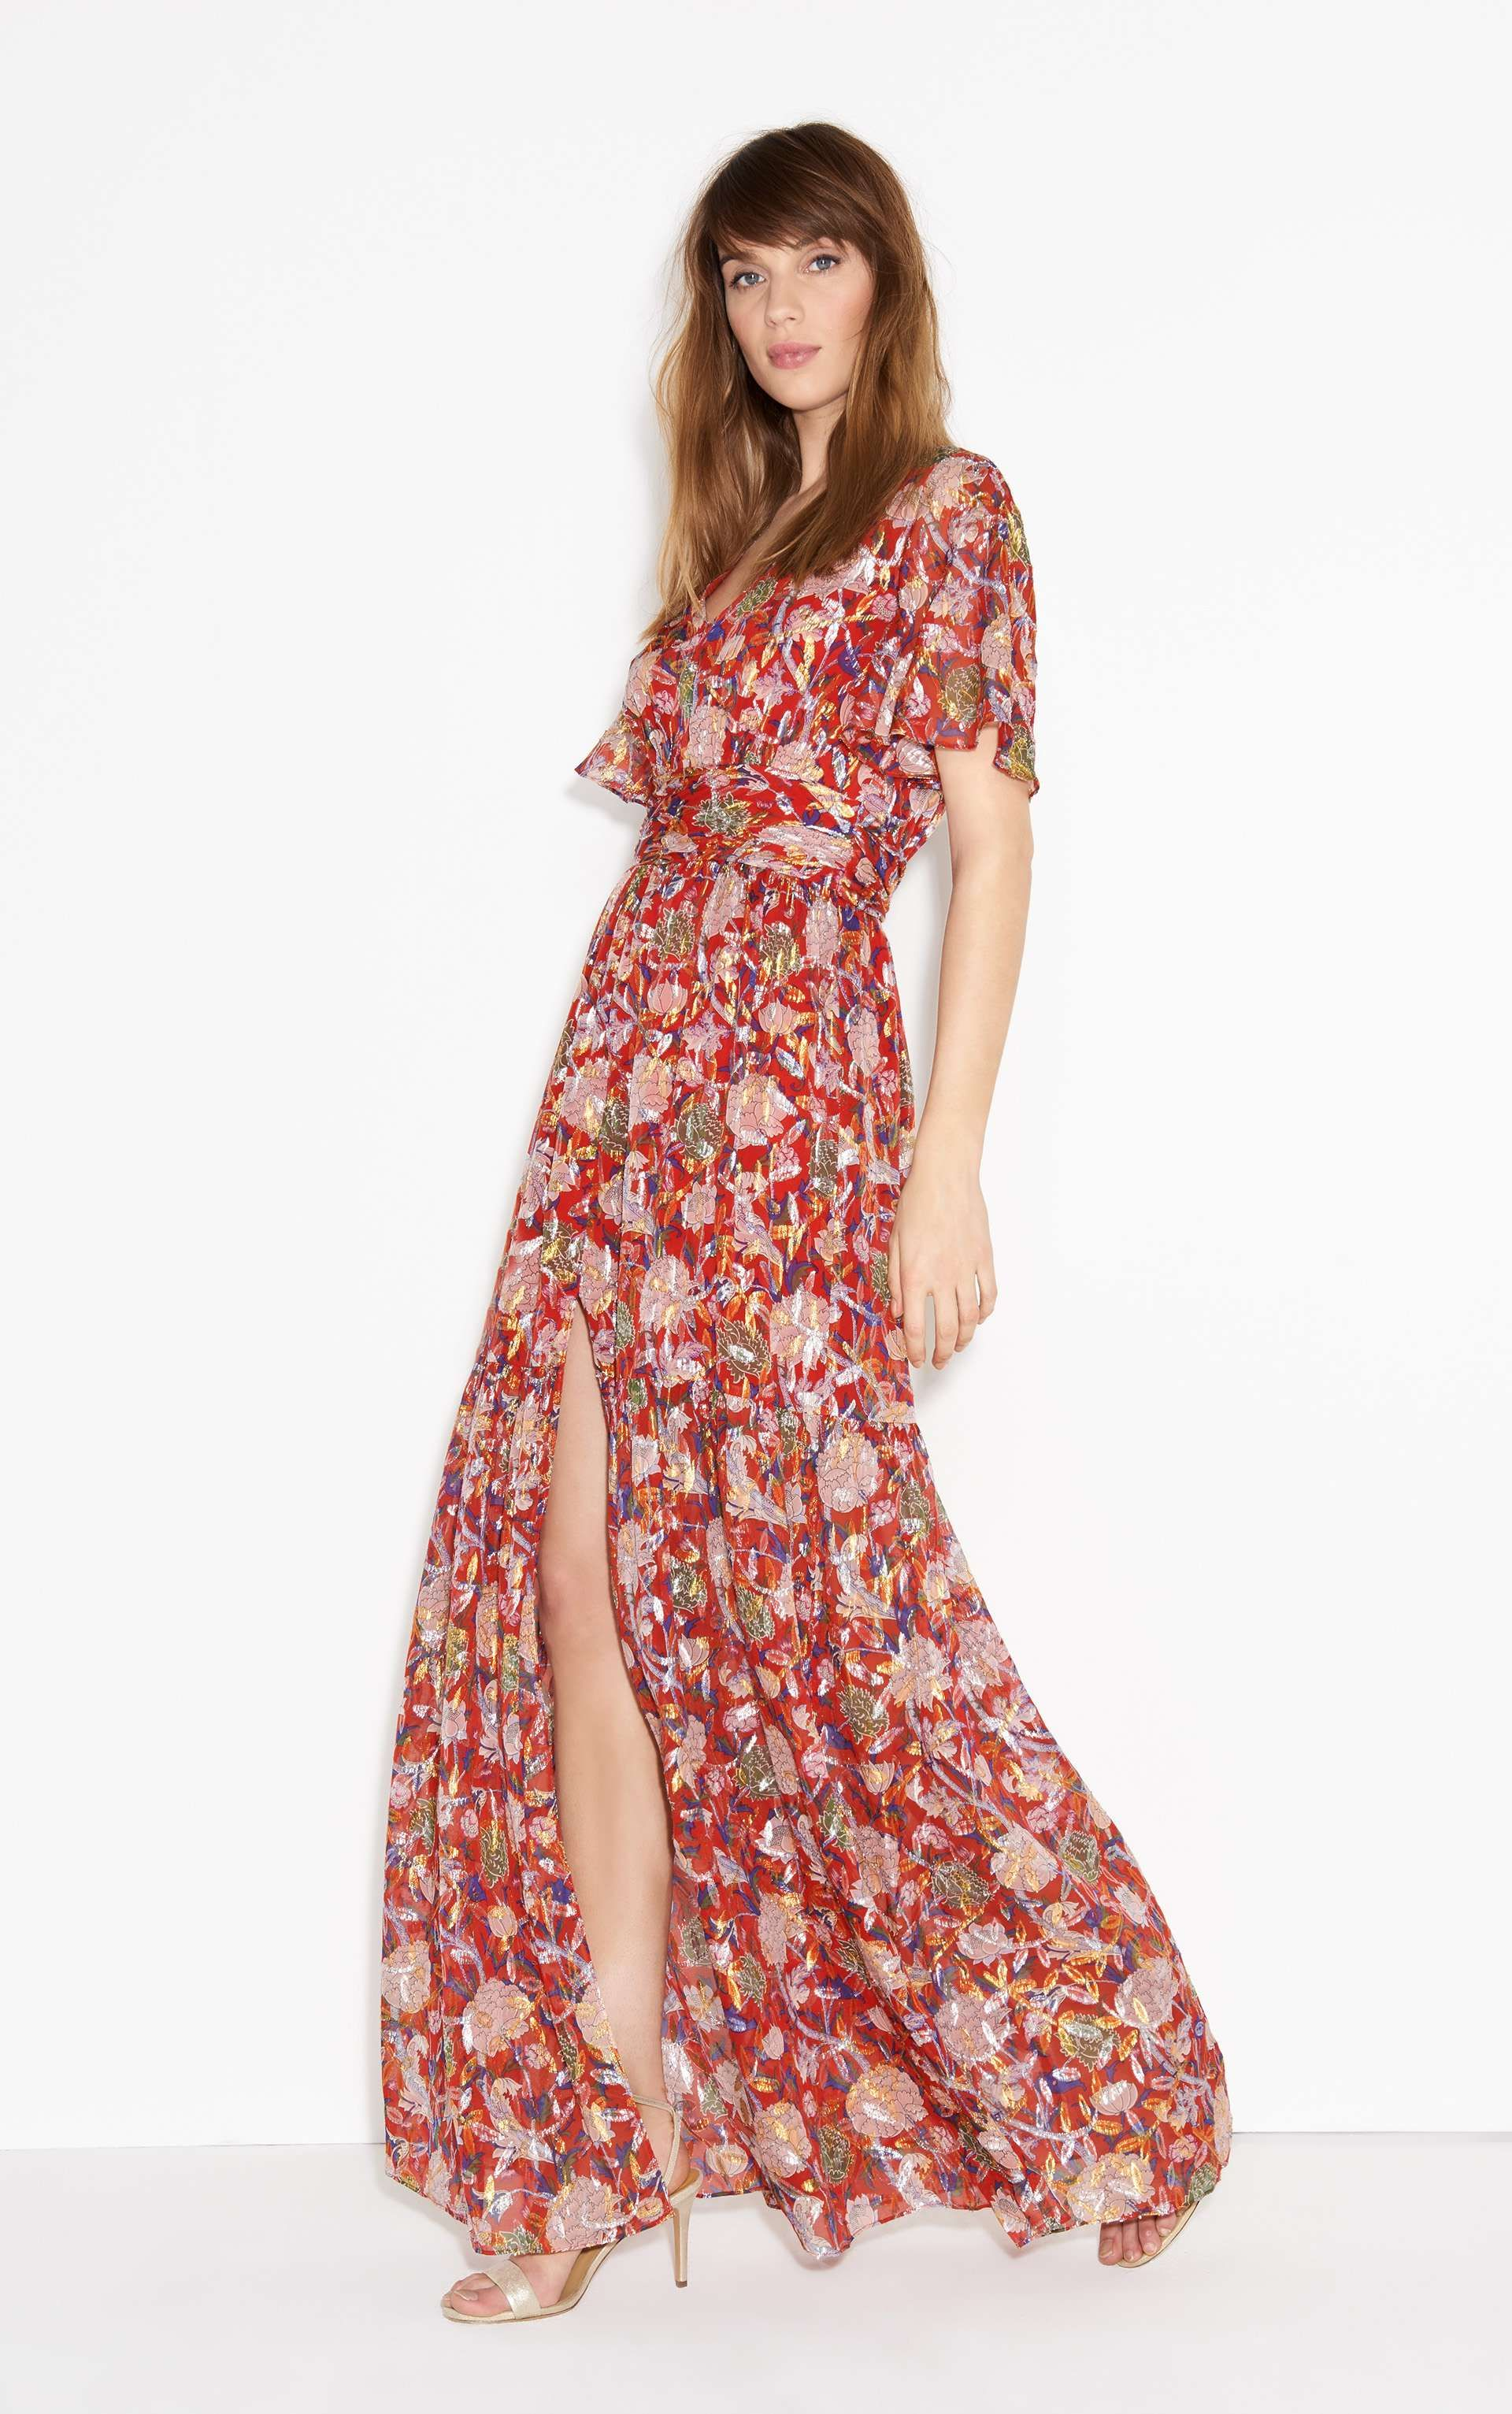 ROBE JESSY | FALL/HOLIDAY | Pinterest